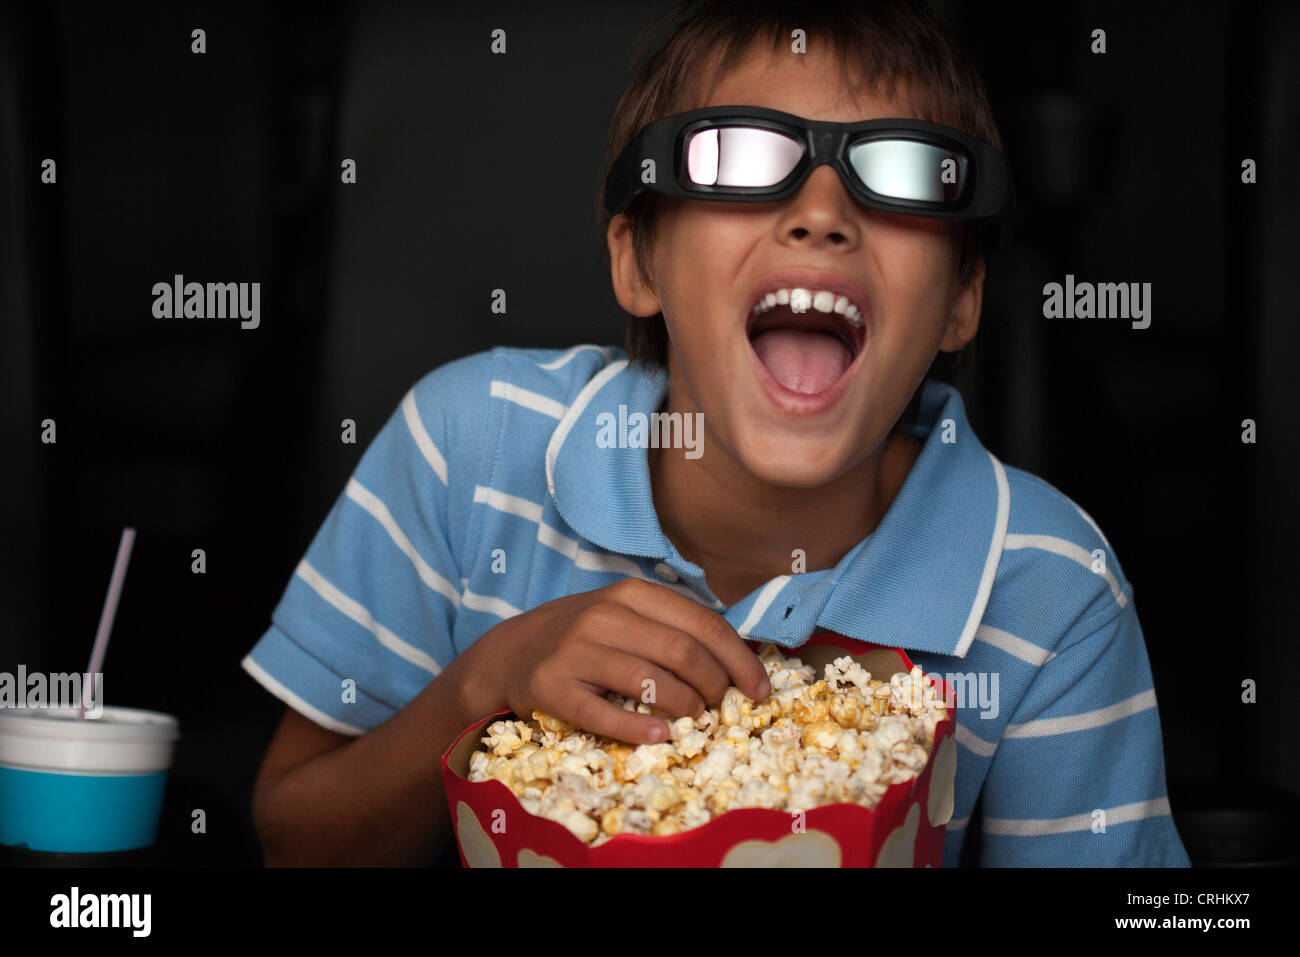 Boy laughing and eating popcorn during 3-D movie in theater - Stock Image